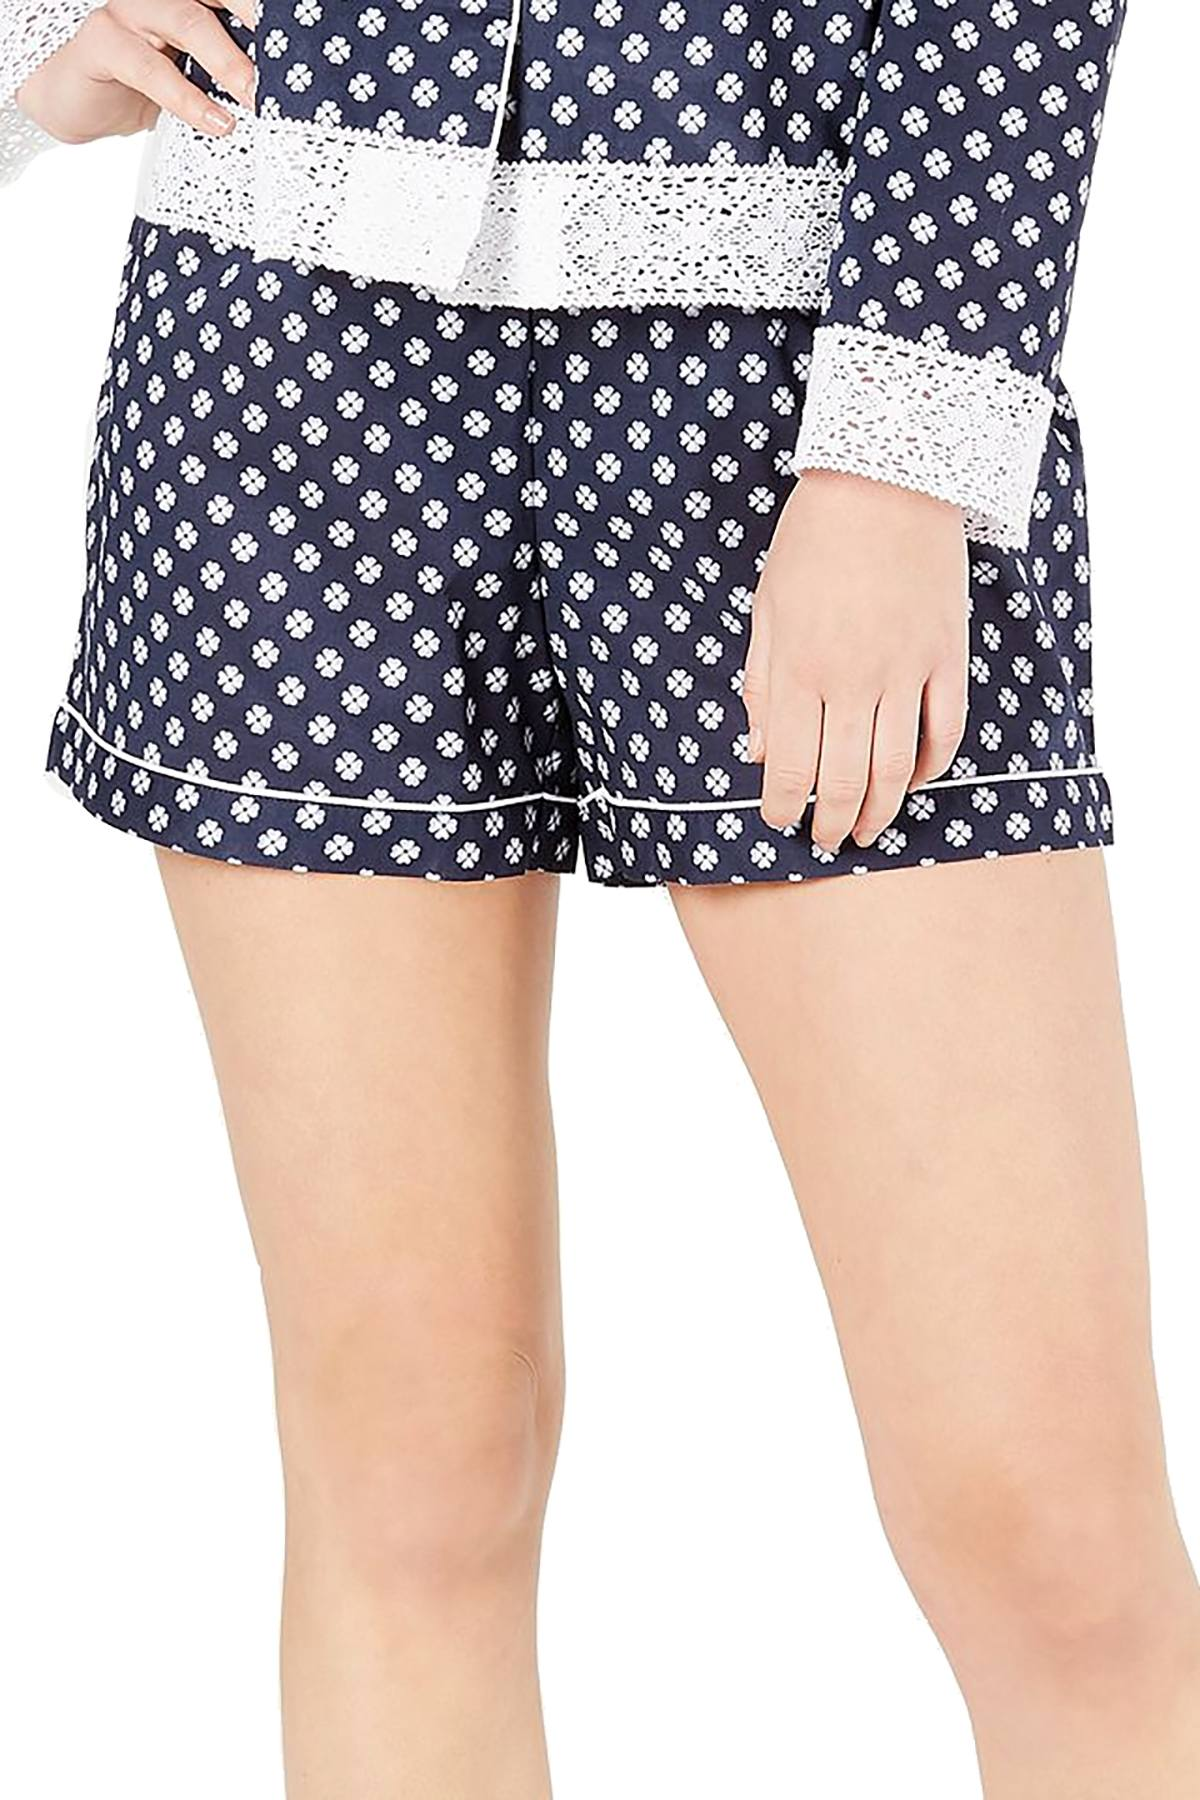 Charter Club Woven Cotton Pajama Short in Mini Floral Geo